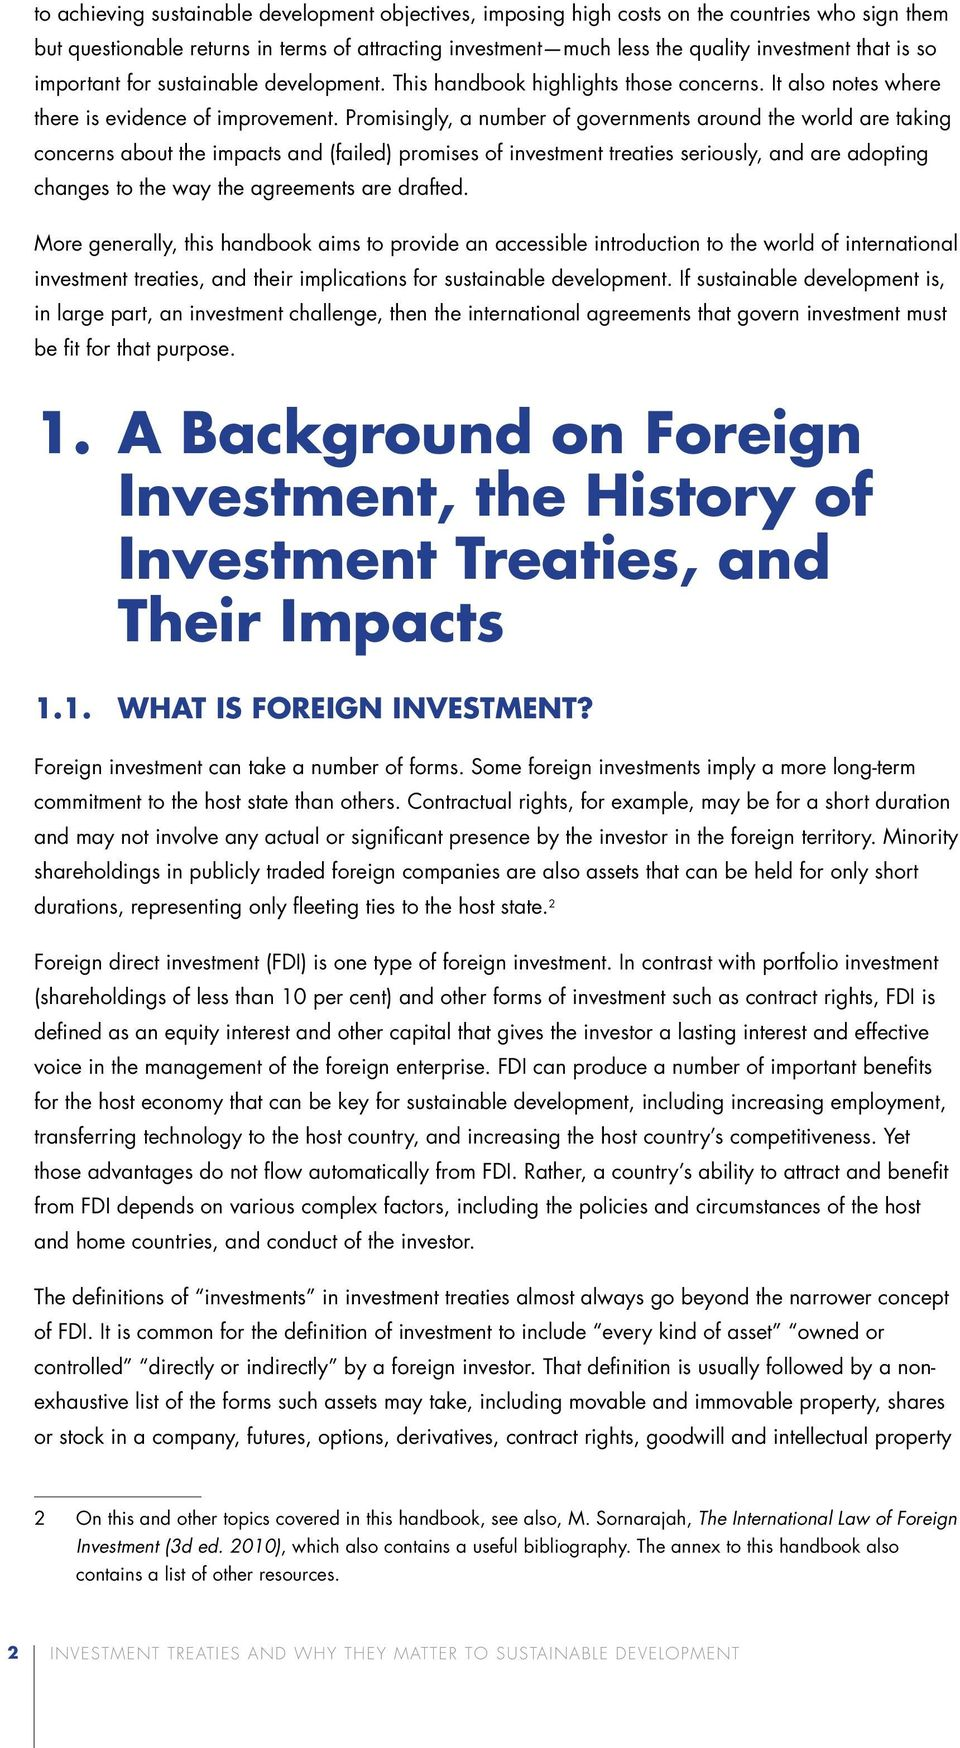 Promisingly, a number of governments around the world are taking concerns about the impacts and (failed) promises of investment treaties seriously, and are adopting changes to the way the agreements